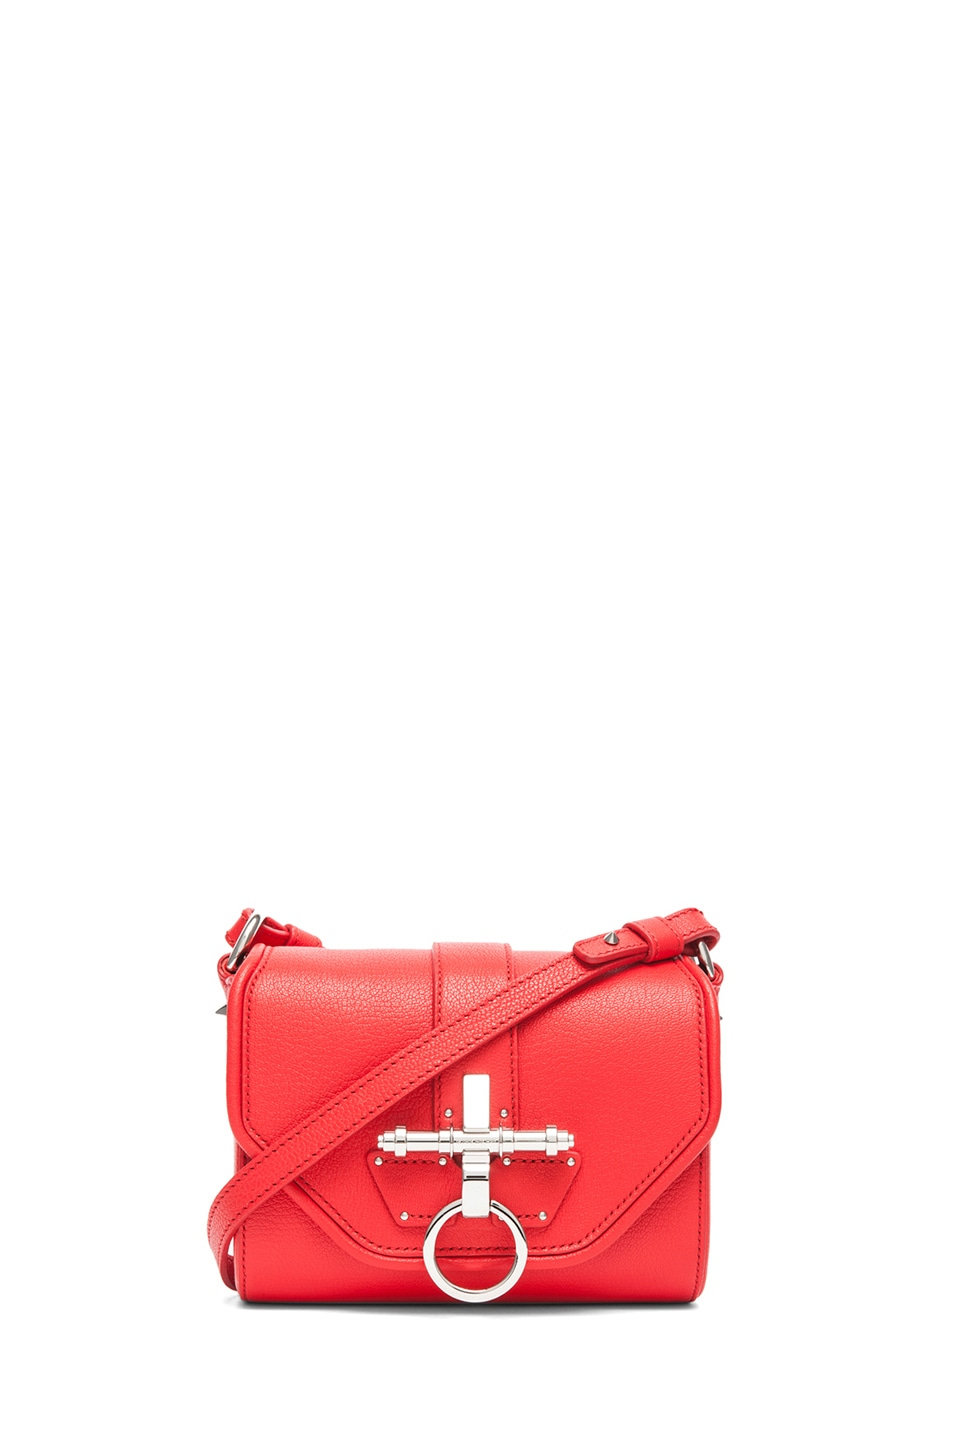 Image 1 of Givenchy Obsedia in Red